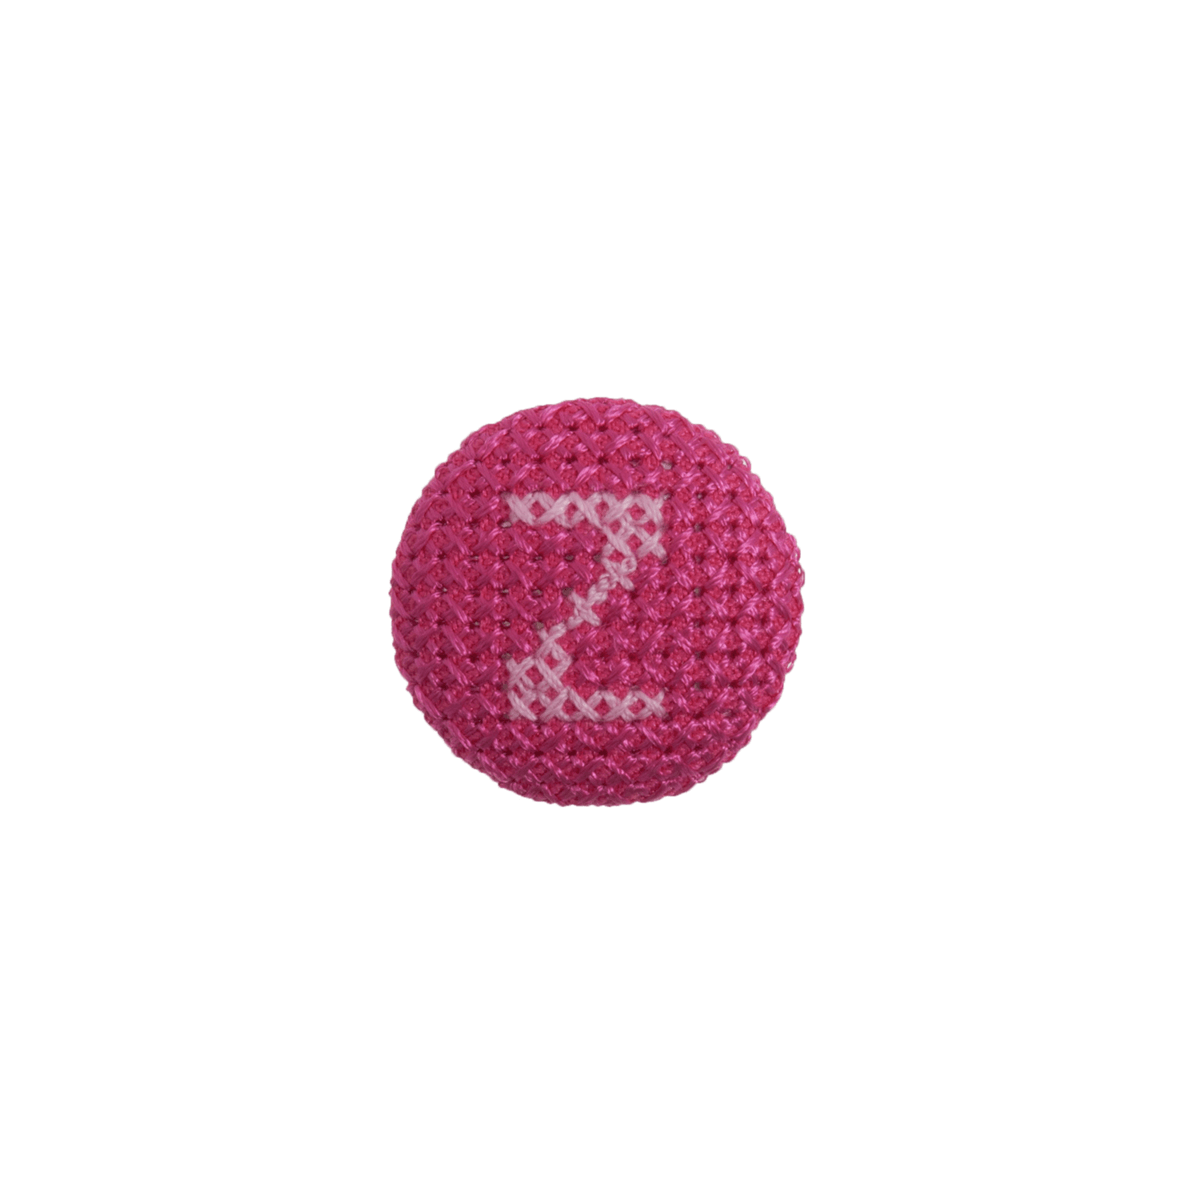 1 x Alphabet Cross Stitch Pink On Fuchsia 40 Lignes 25mm Craft Buttons